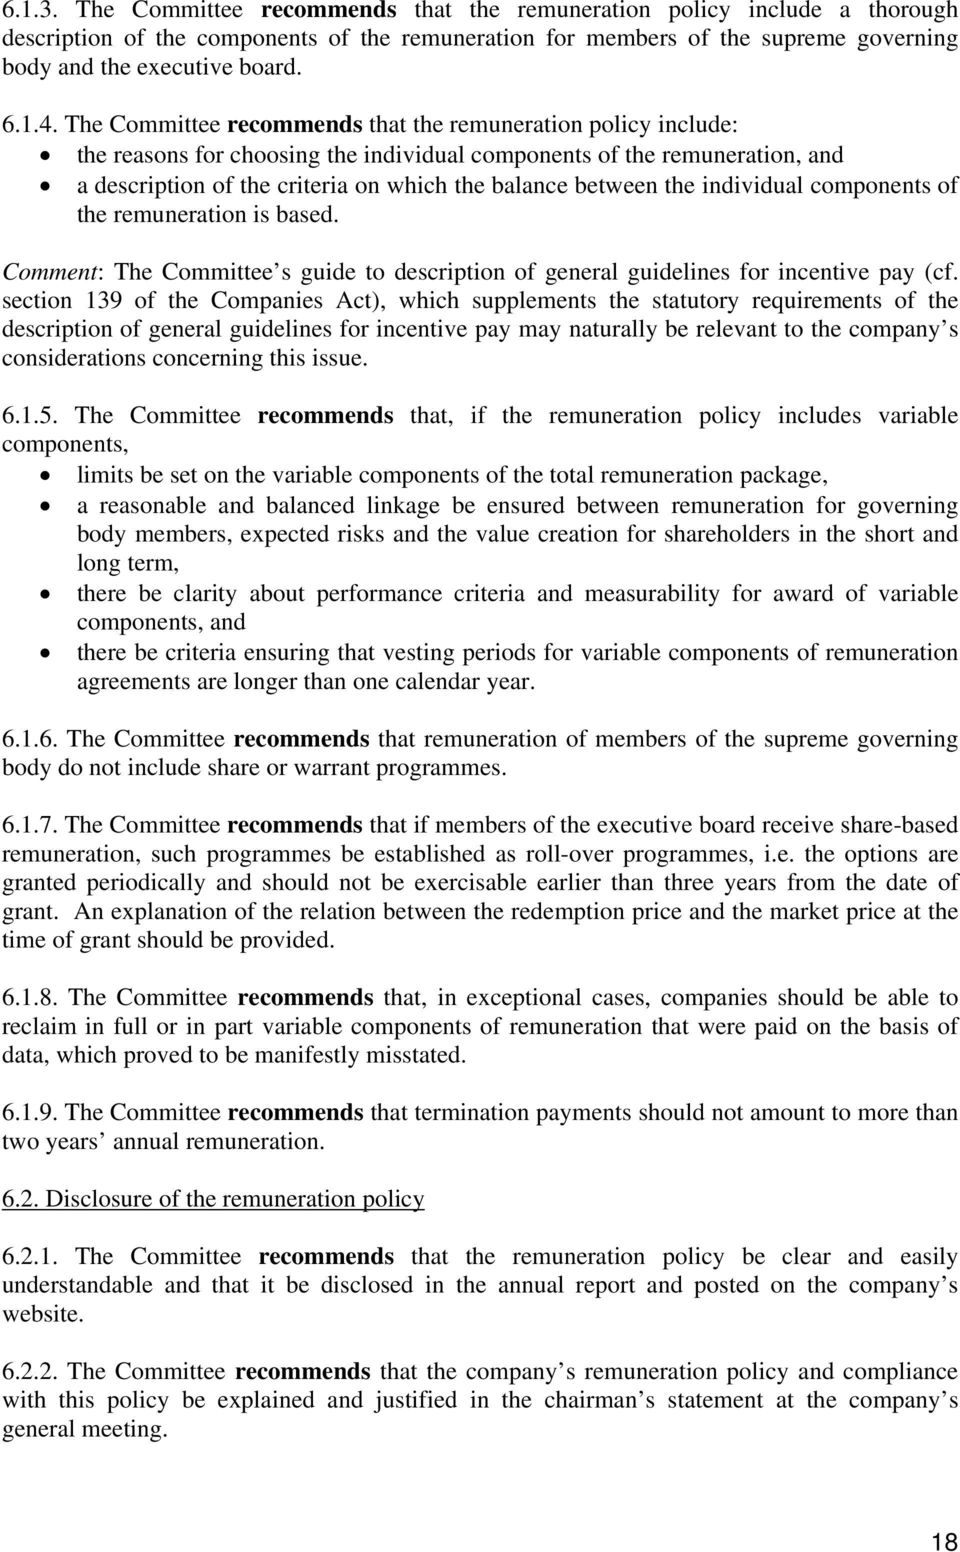 between the individual components of the remuneration is based. Comment: The Committee s guide to description of general guidelines for incentive pay (cf.